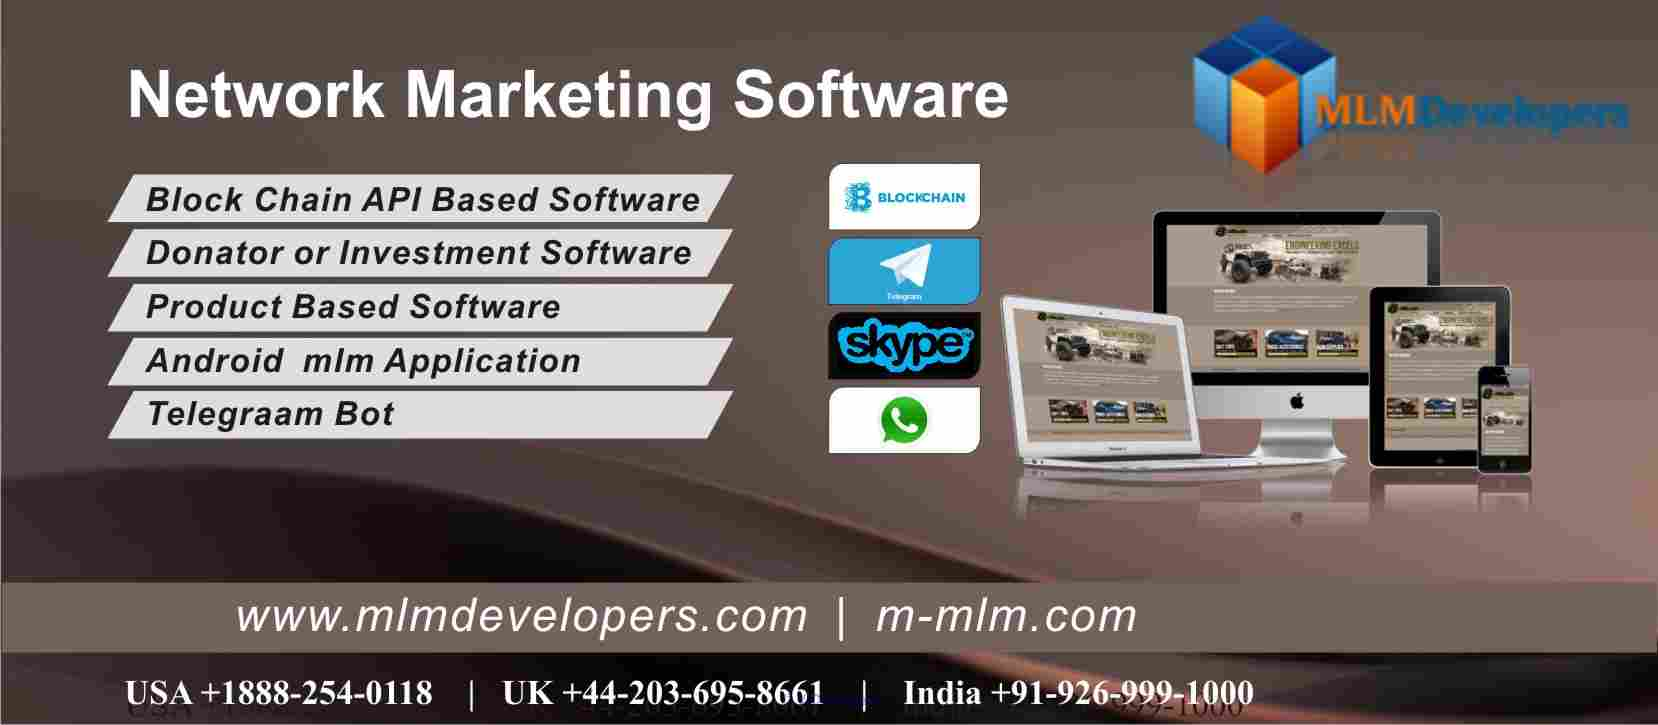 Canada No1. Network Marketing Software Provider. calgary